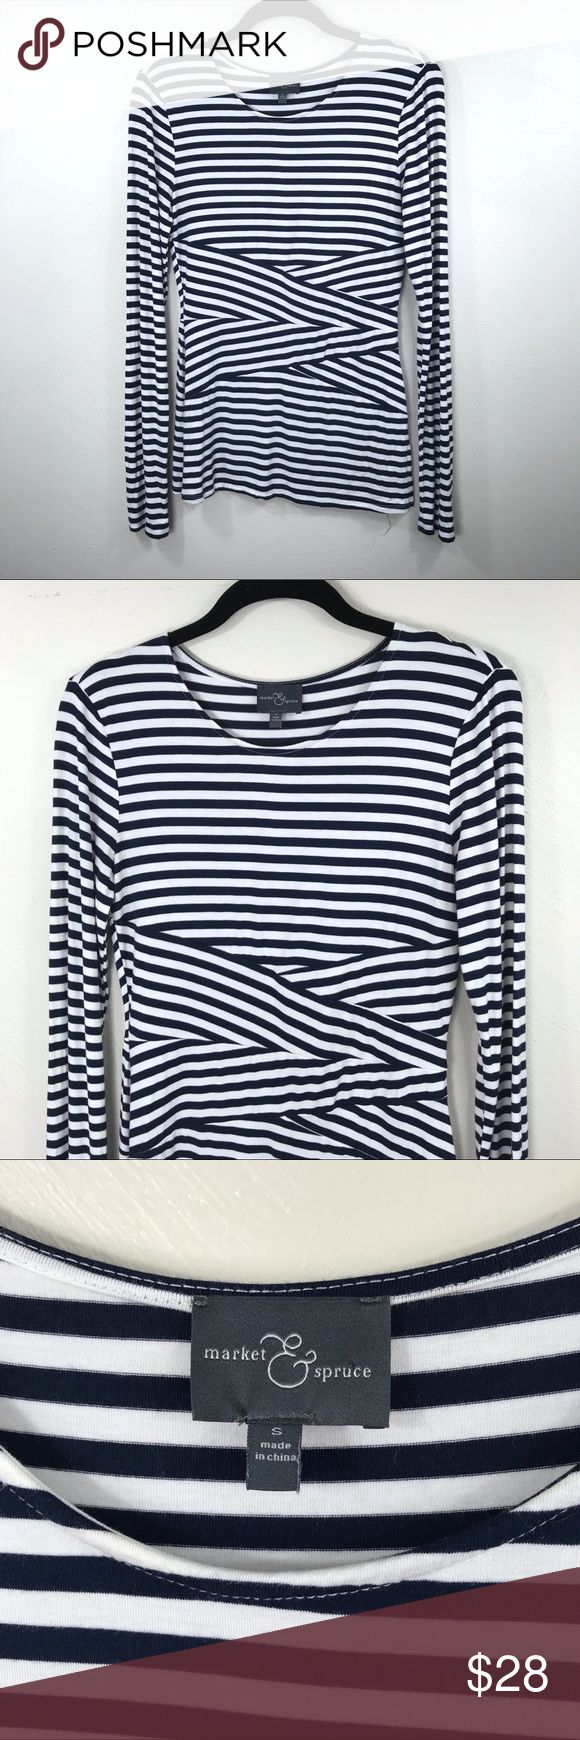 "Market & Spruce Striped Top Brand: Stitch Fix Market & Spruce Description: Striped long sleeve tee Color: Blue and white Size: Small Chest Measurement: 15"" across laying flat Length: 24"" from shoulder to hem Material: 94% rayon / 6% spandex Condition: Excellent, pre-owned condition Market & Spruce Tops Blouses"